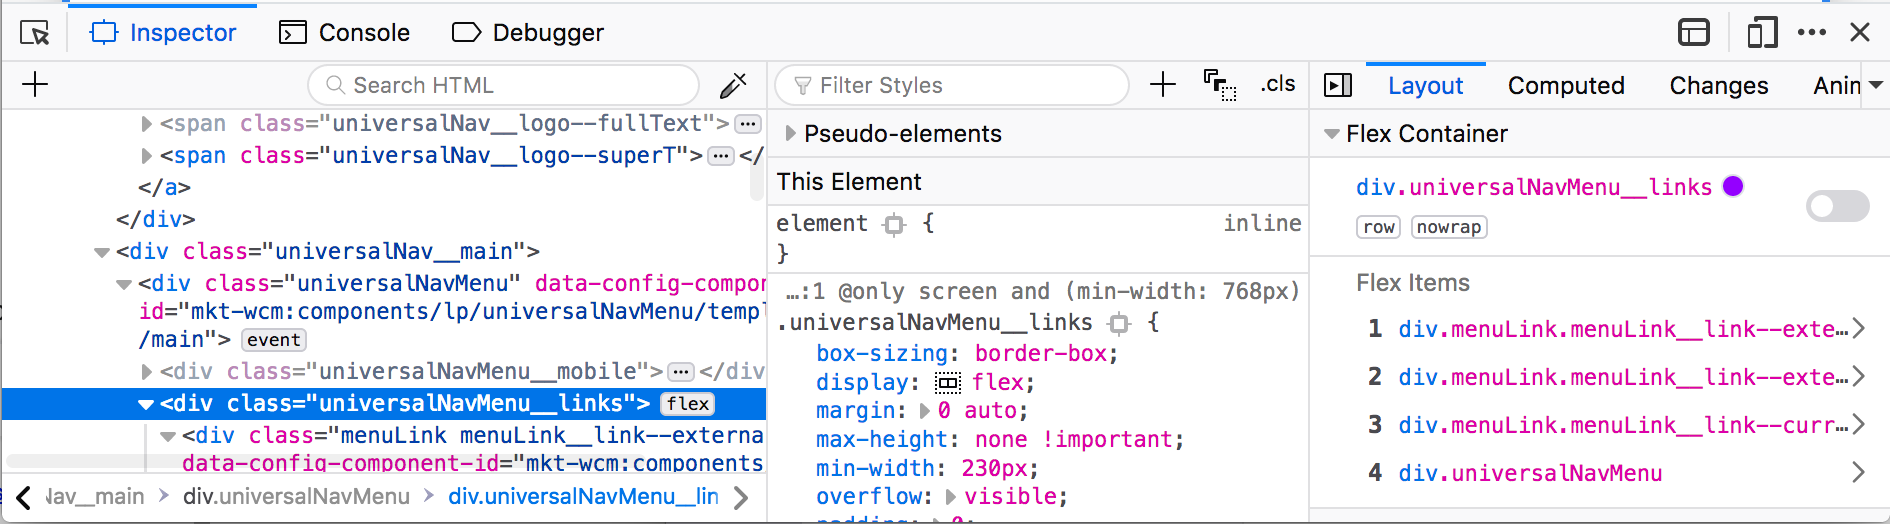 Showing the Flexbox info automatically when selecting a Flex element